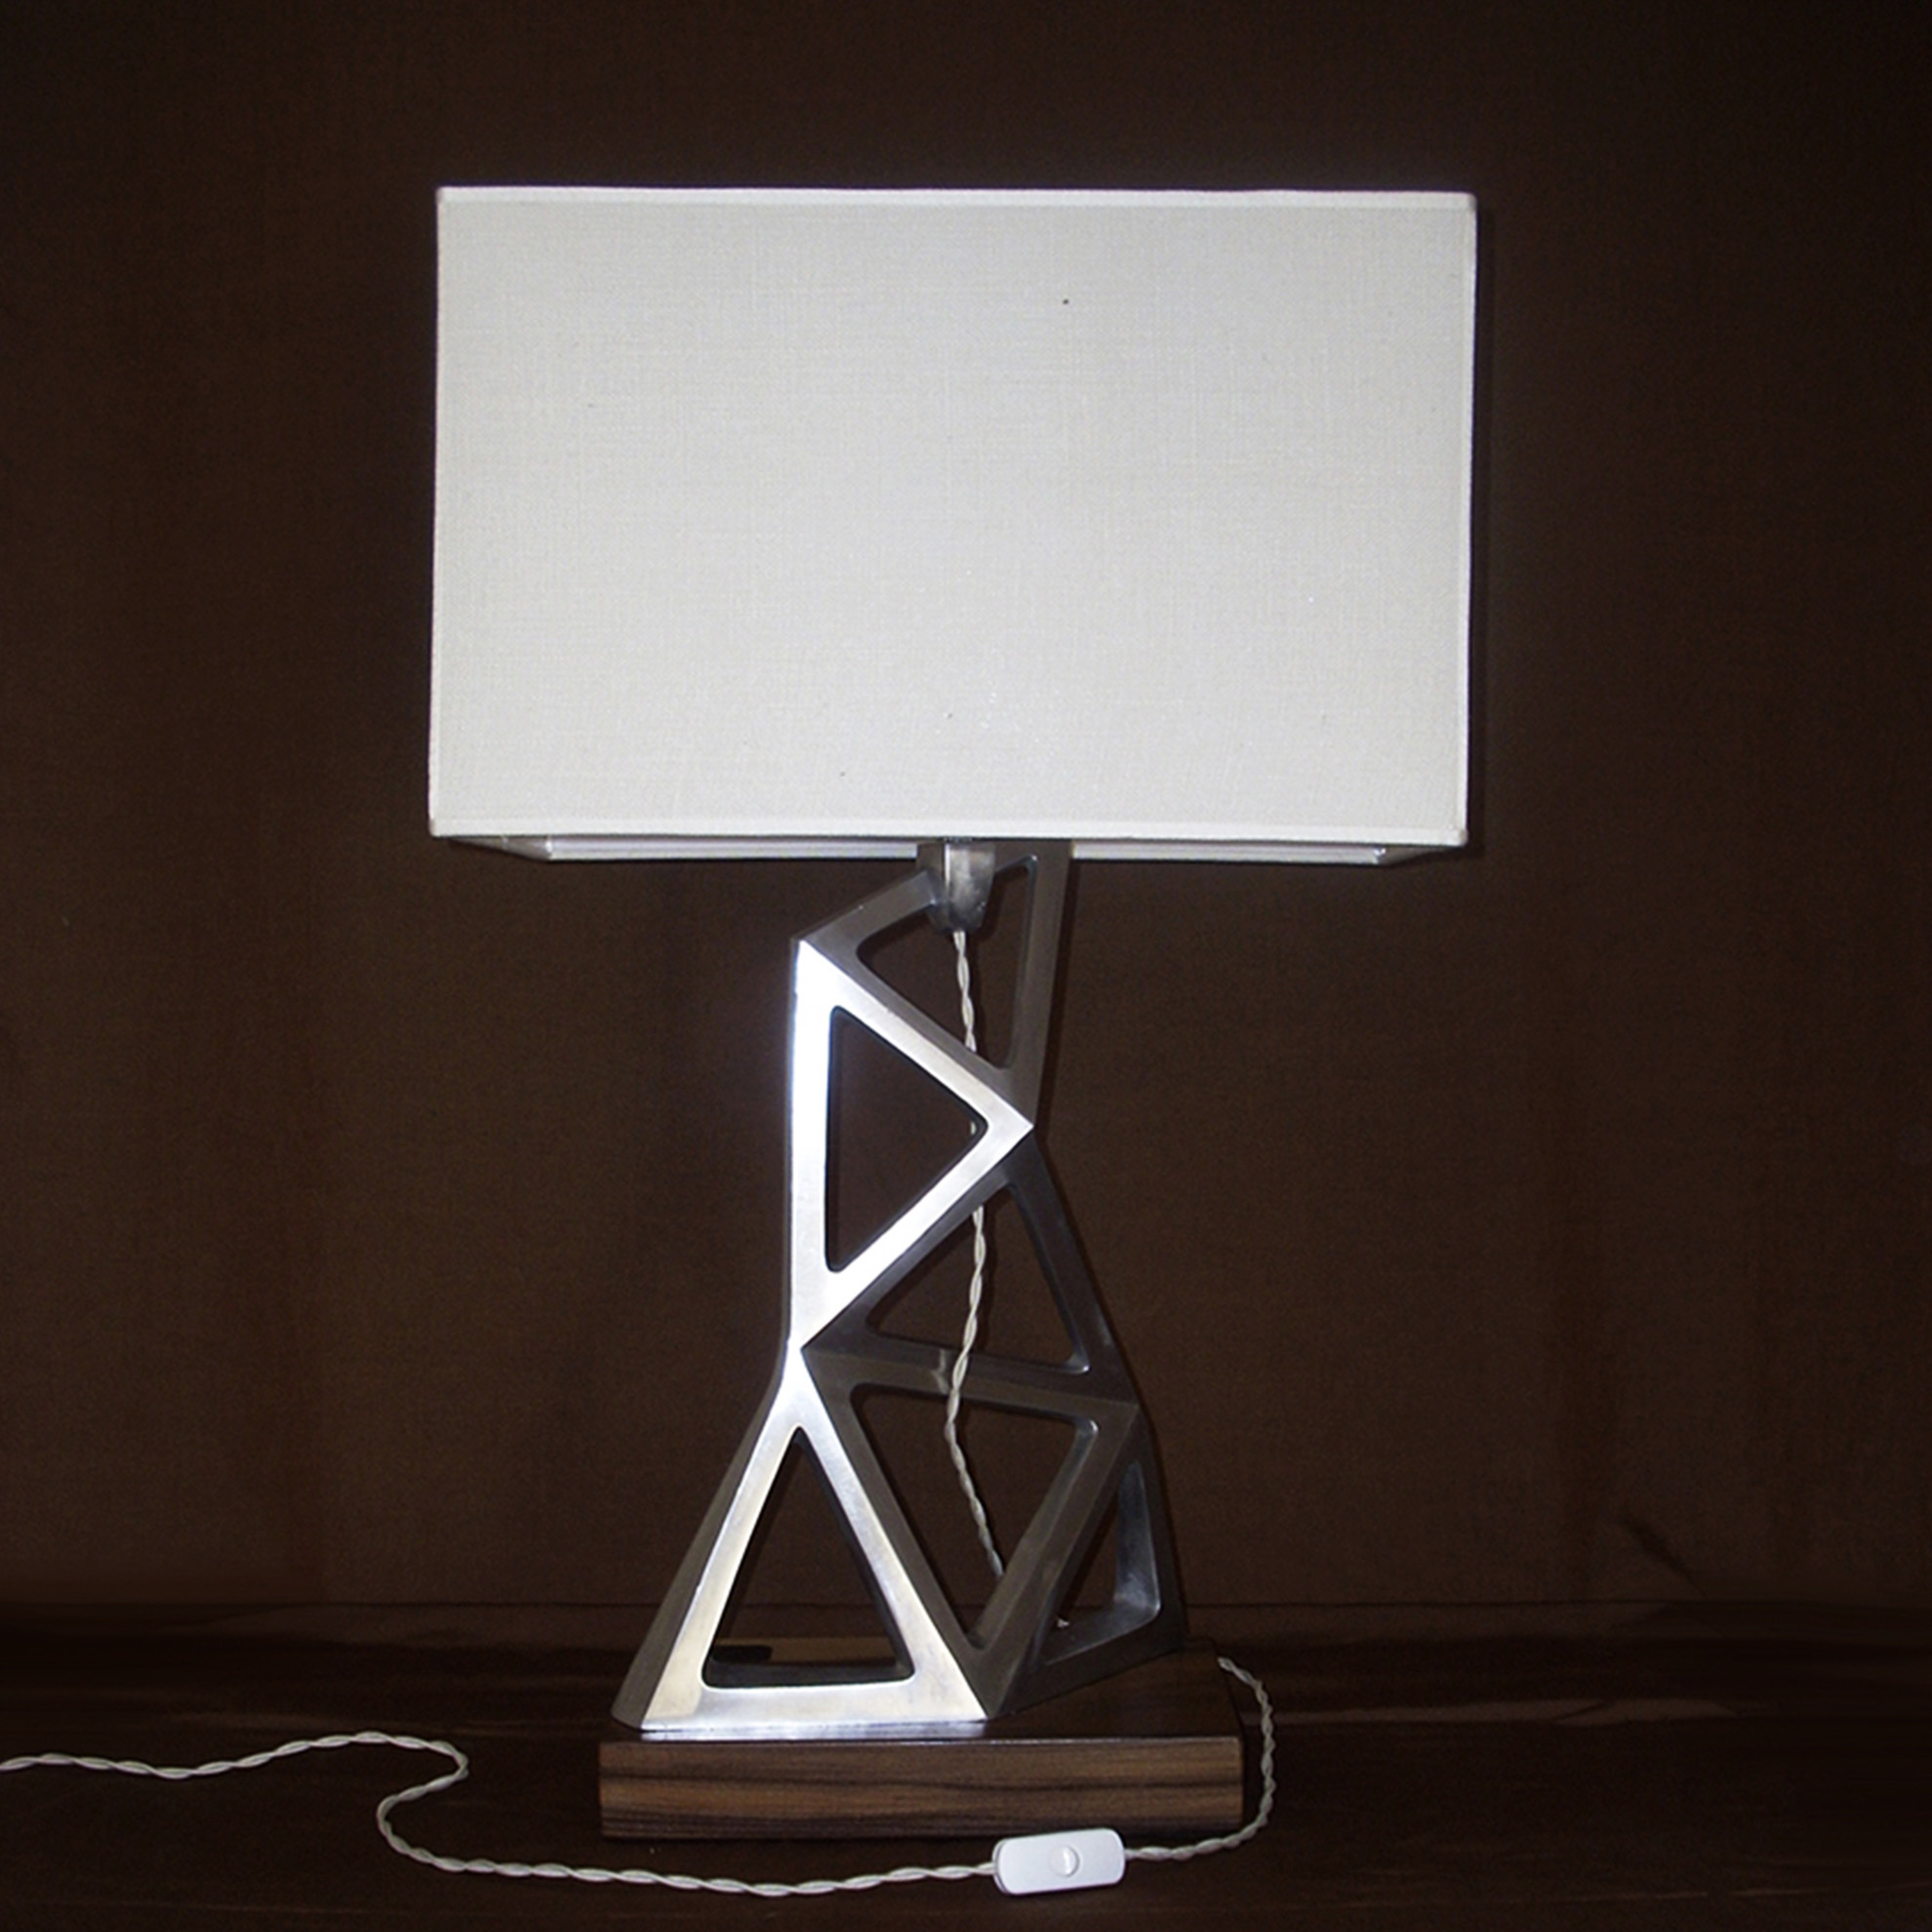 Space Frame lamp